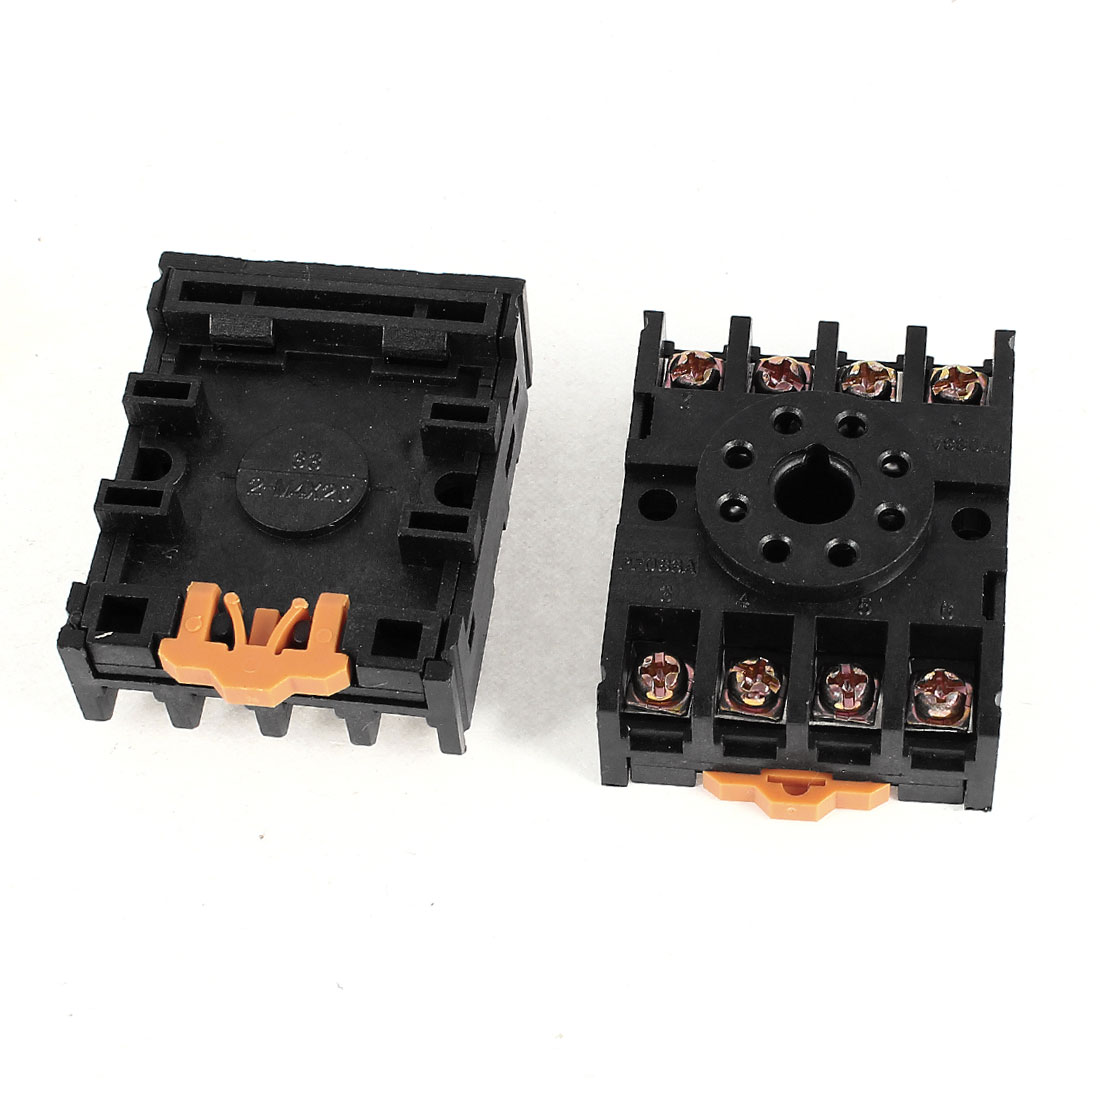 2Pcs PF083A 8 Pin Time Relay Screw Terminal Socket Base 12 Amps 300 Volts for JQX-10F-2Z MK2P